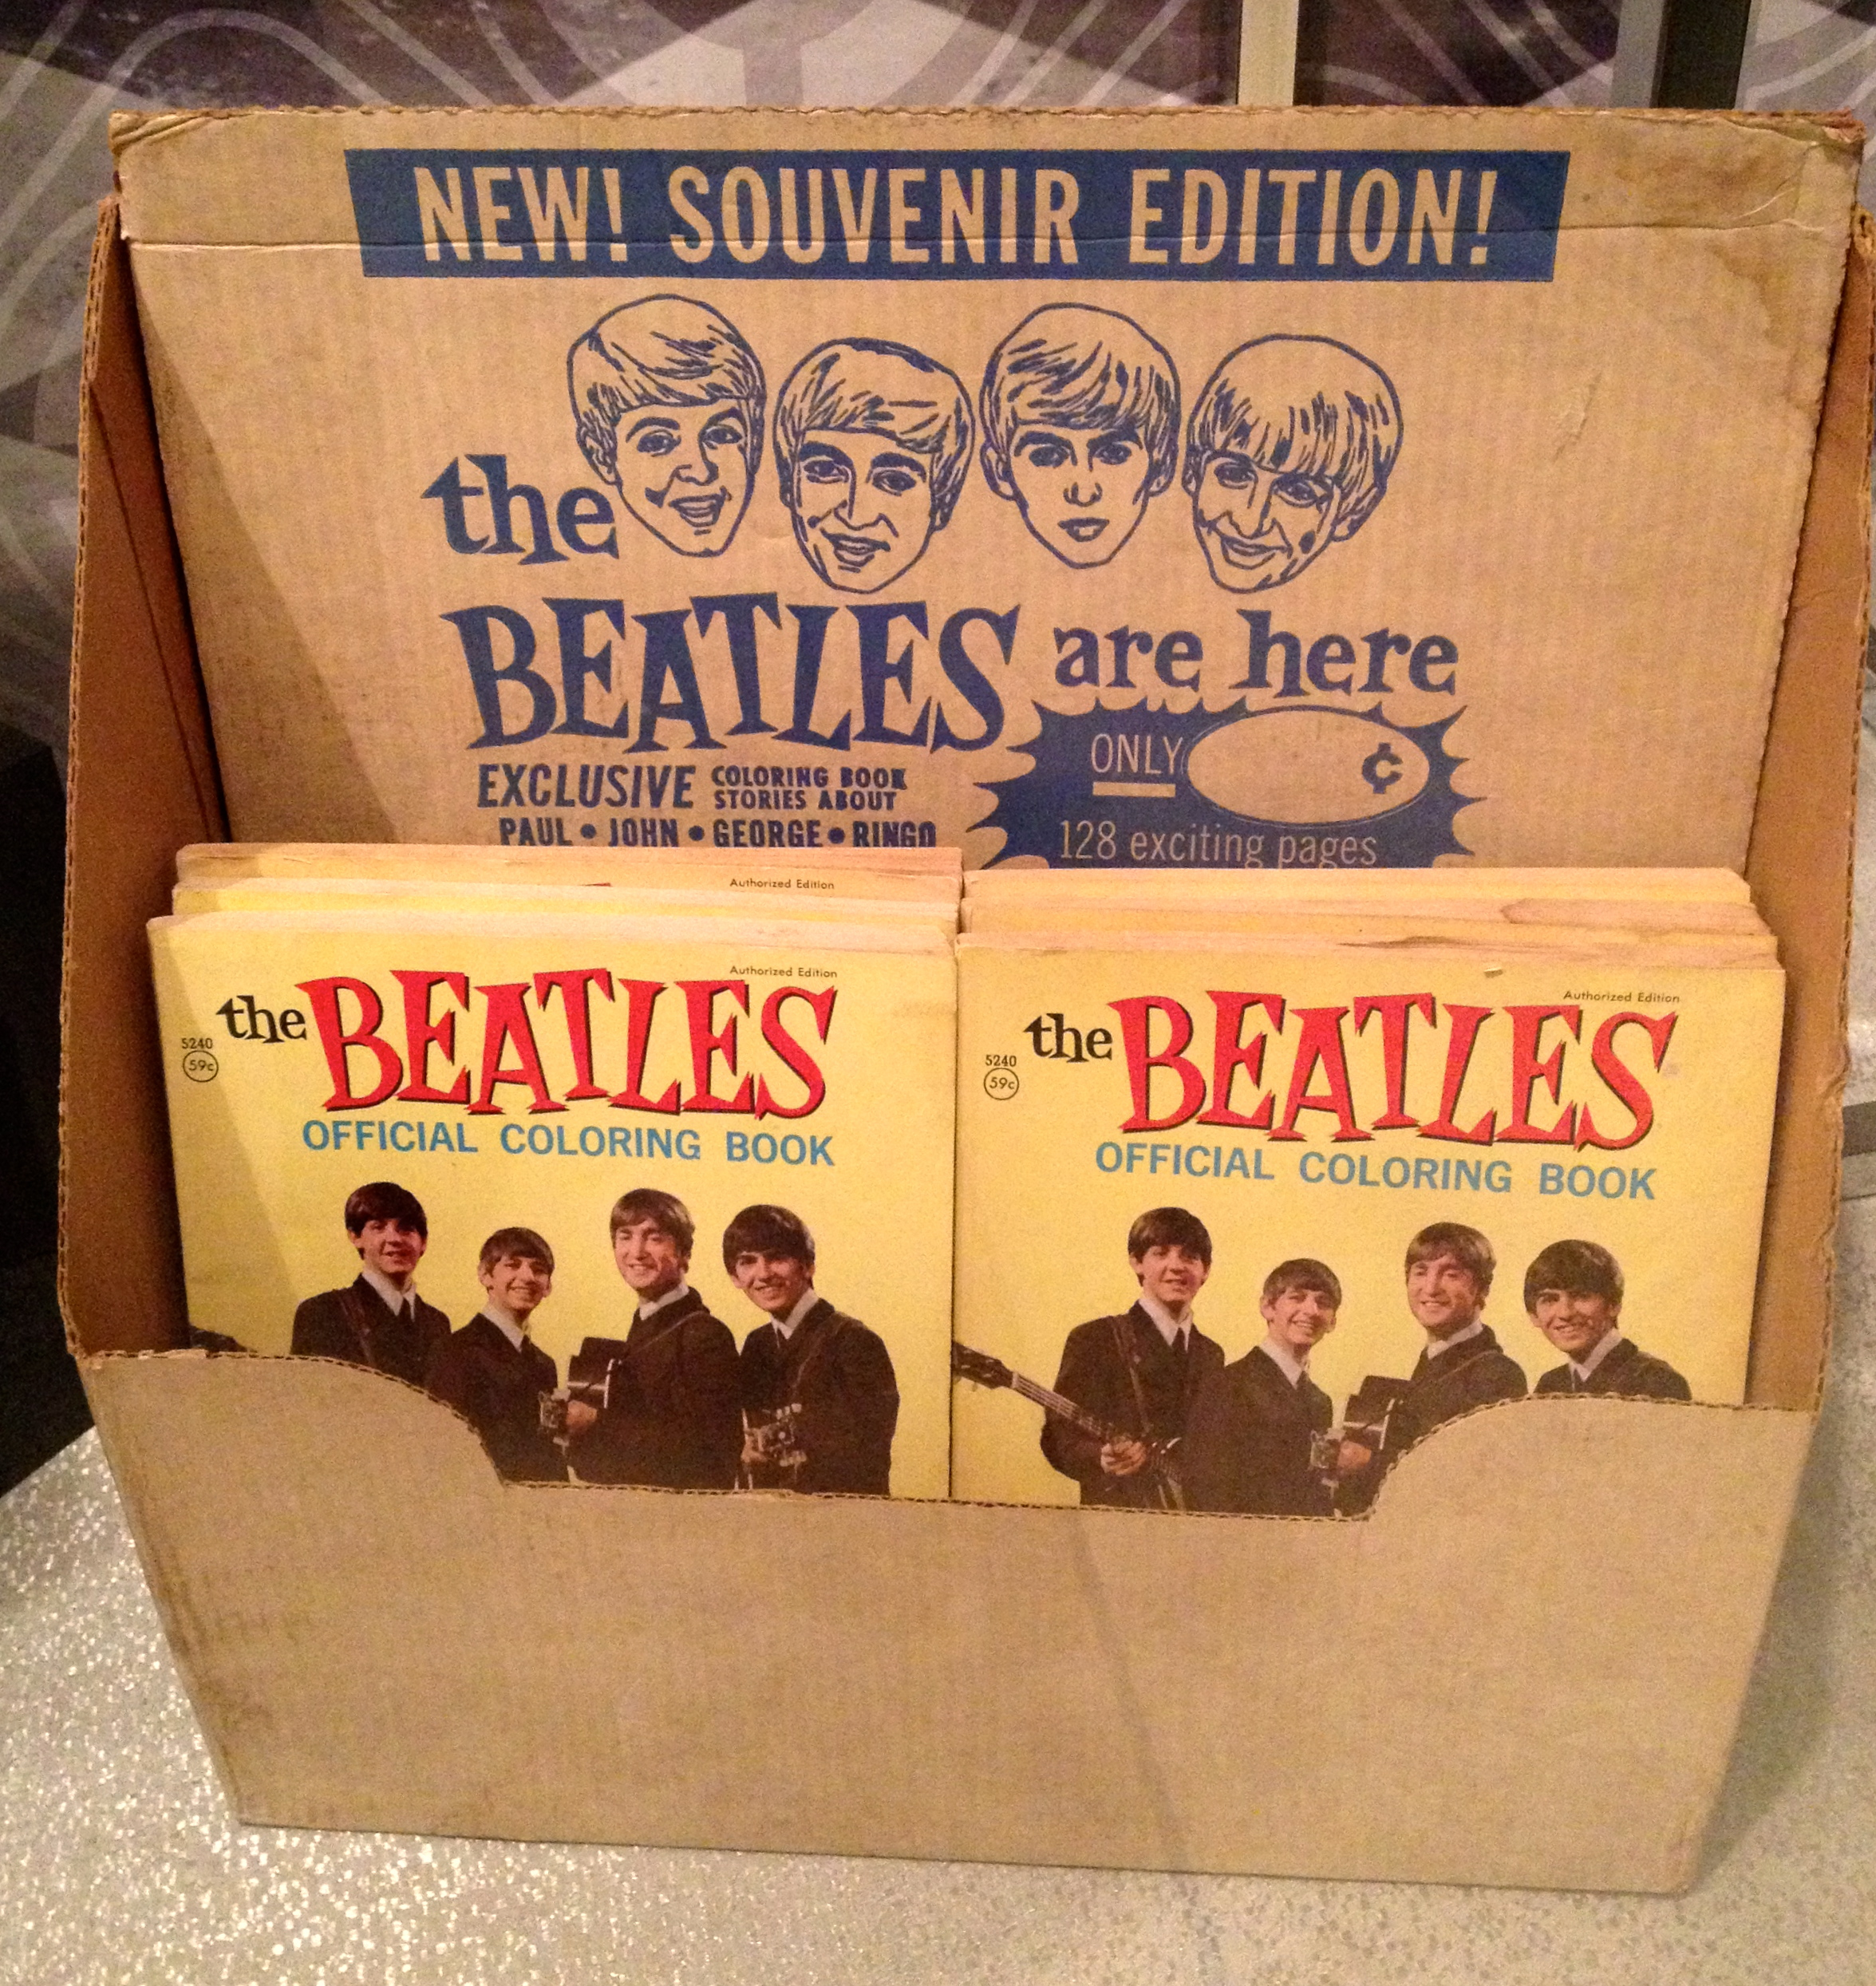 youd buy a new box of crayolas just for this coloring book wouldn - Beatles Coloring Book